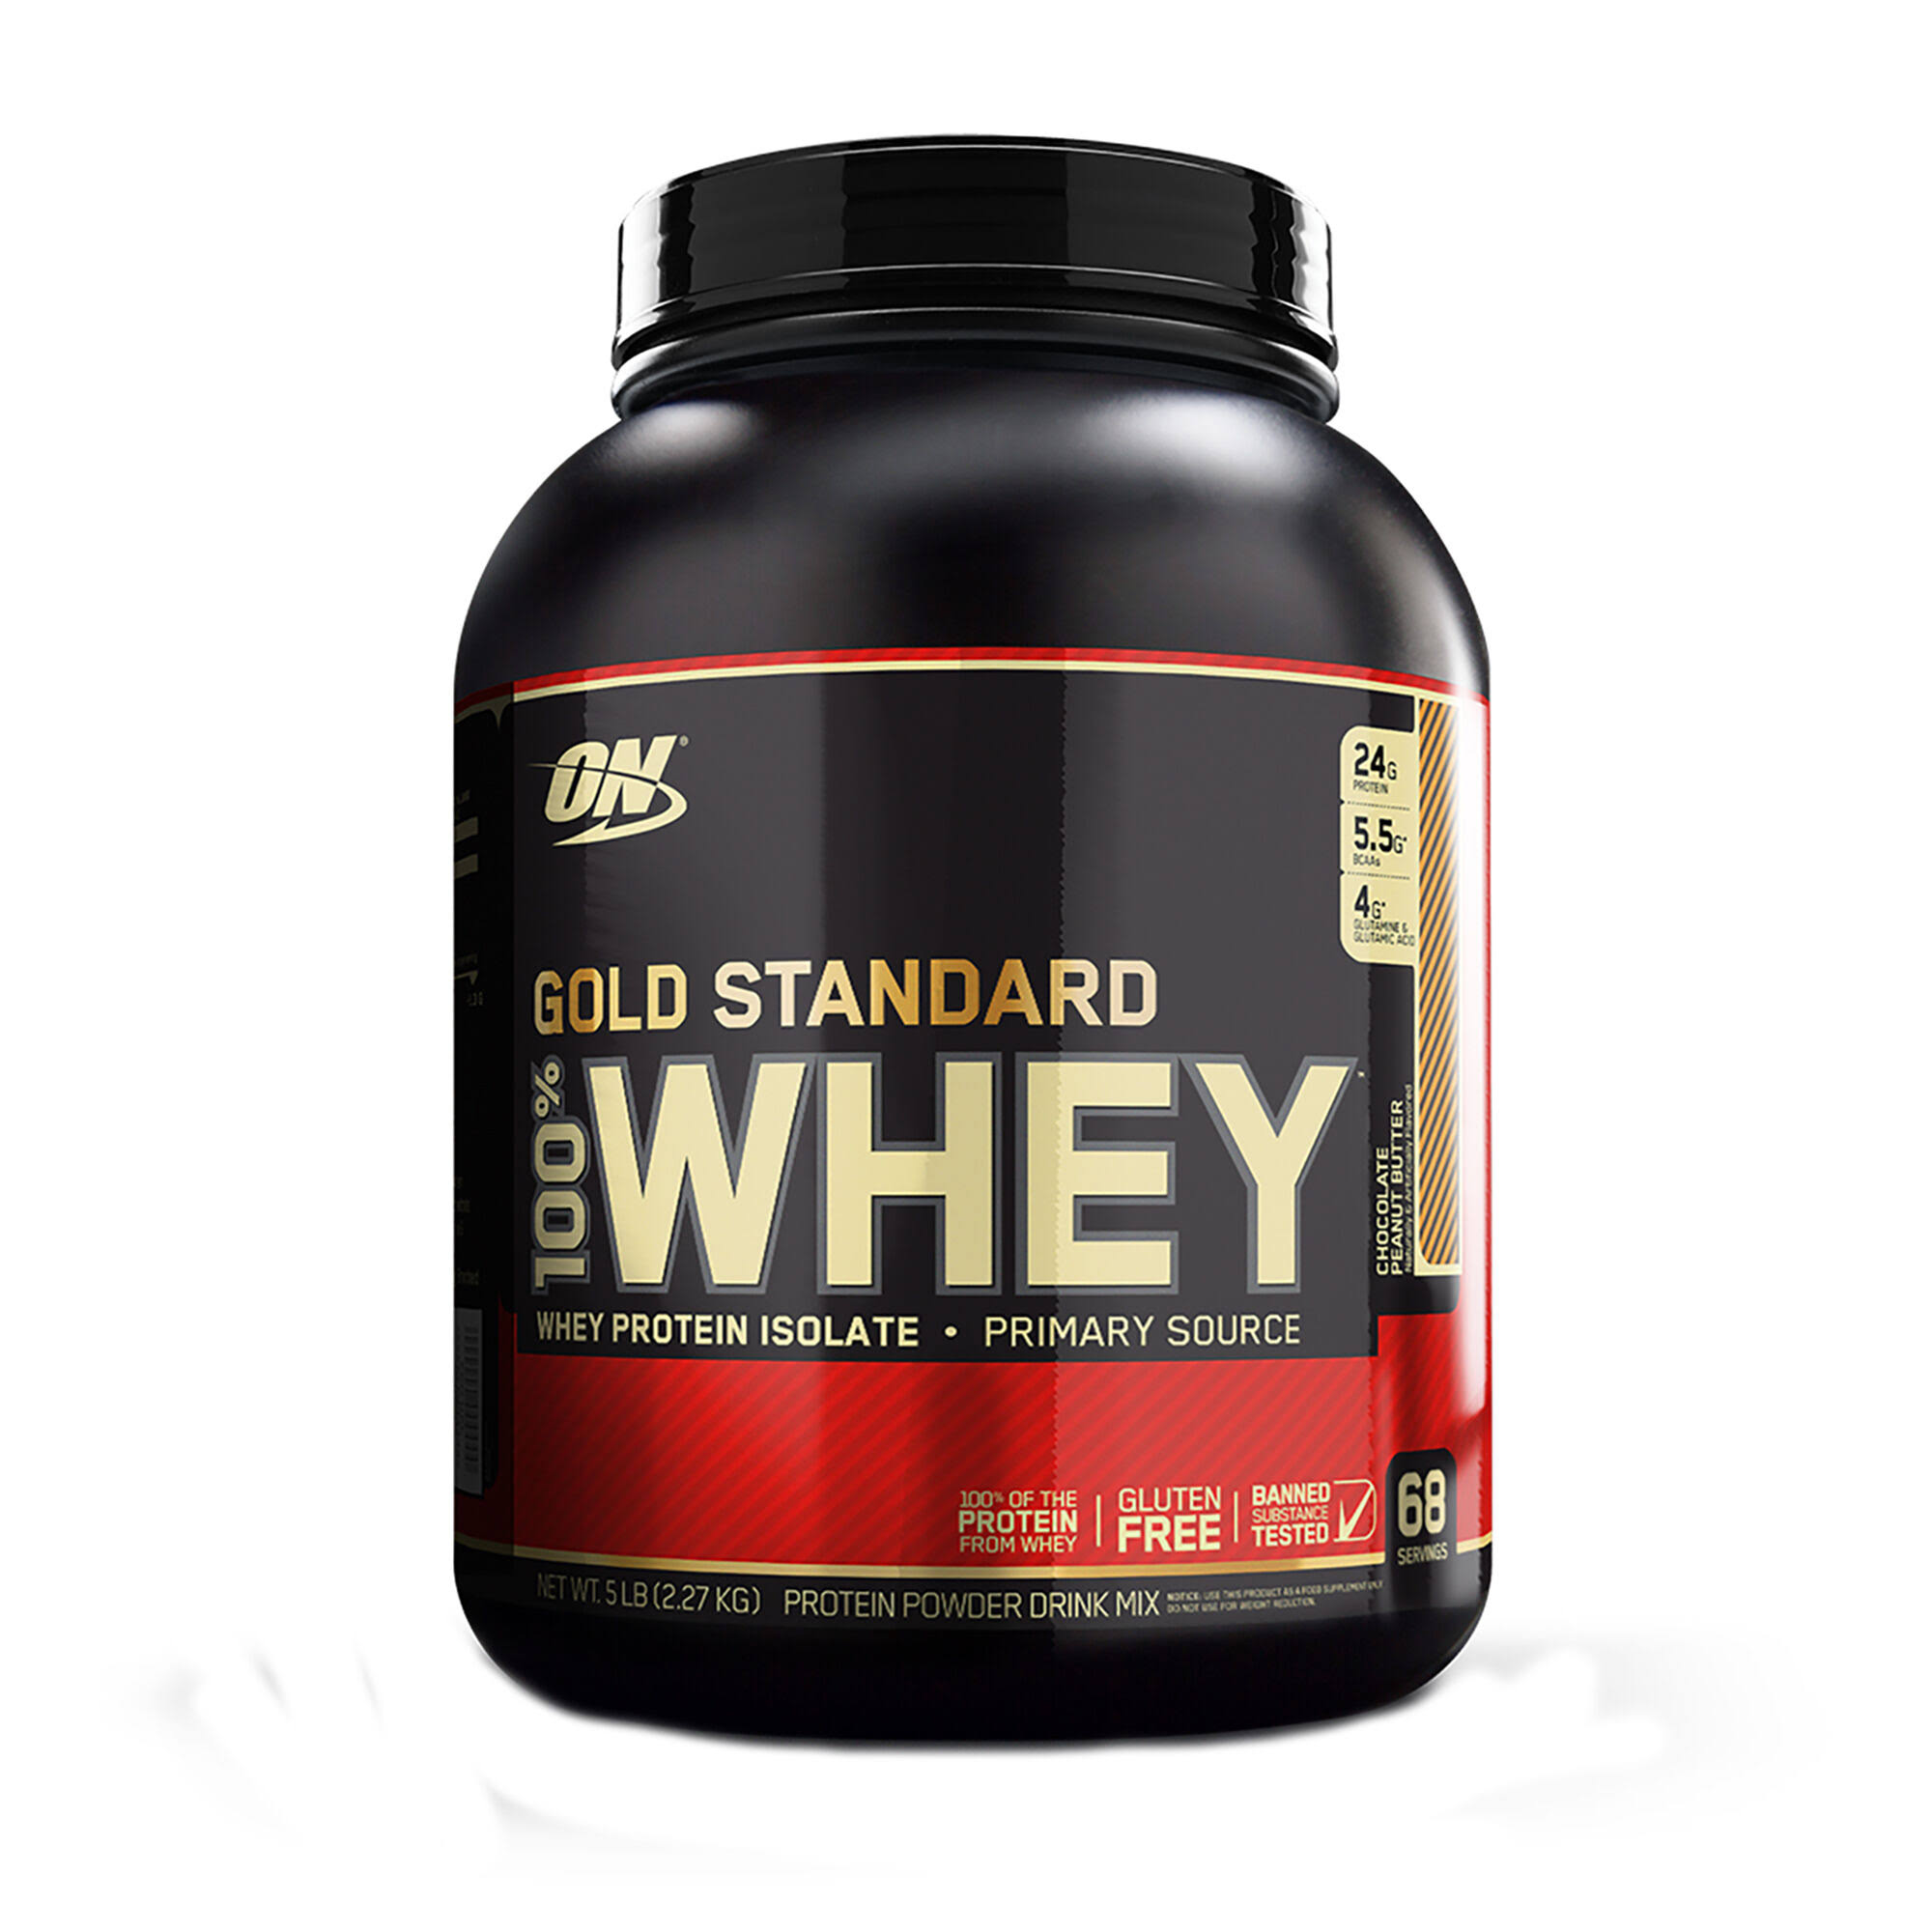 Optimum 100 Gold Standard Whey - Chocolate Peanut Butter, 2.3kg